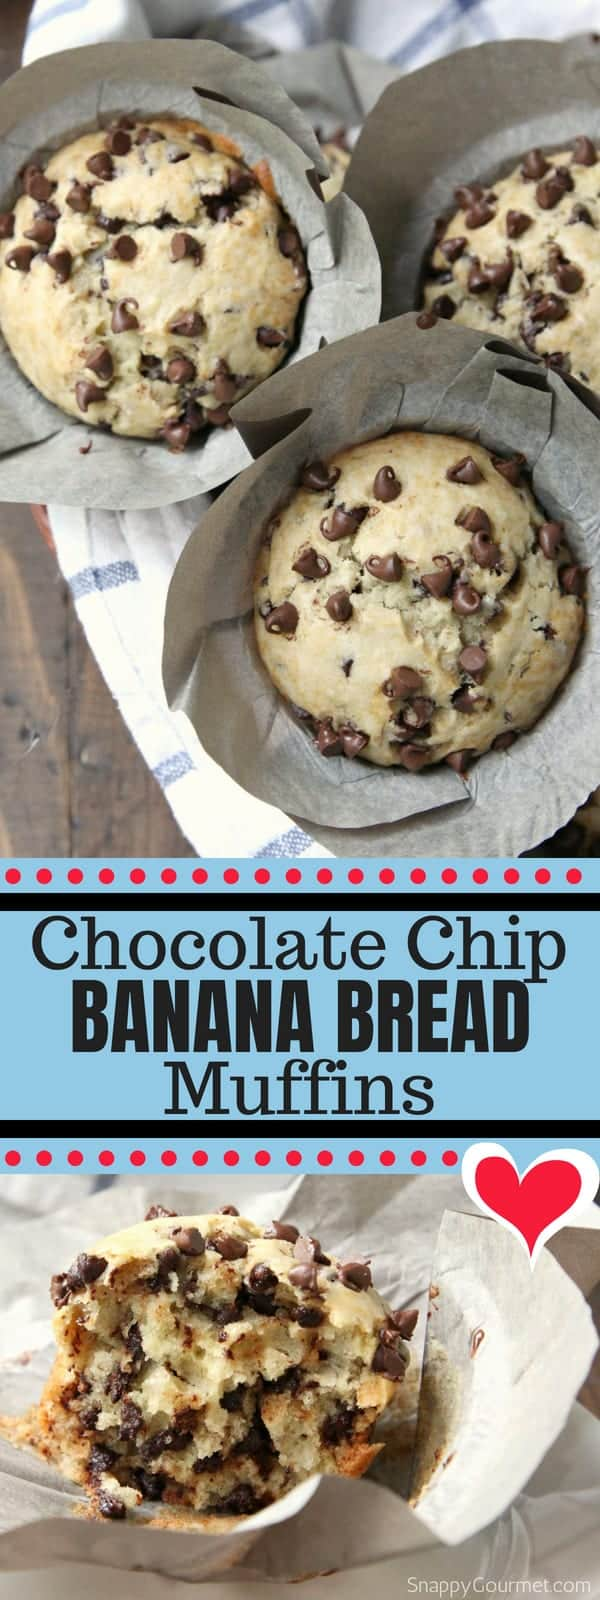 Chocolate Chip Banana Bread Muffins recipe - homemade banana muffins with chocolate chips